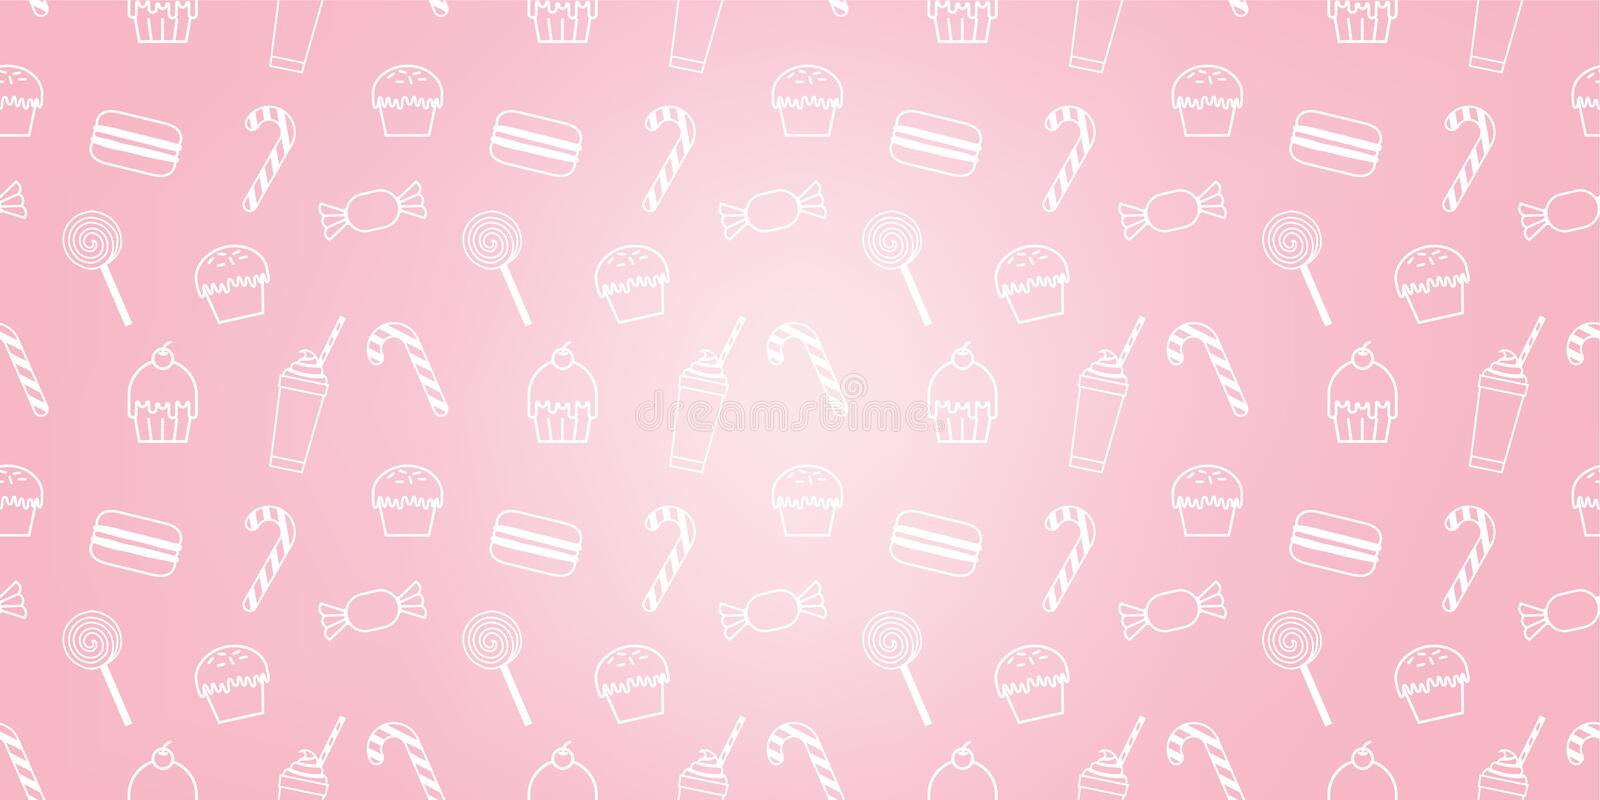 Bakery cute cupcake candy milkshake macaroon sweet pink icon cafe pattern background vector illustration